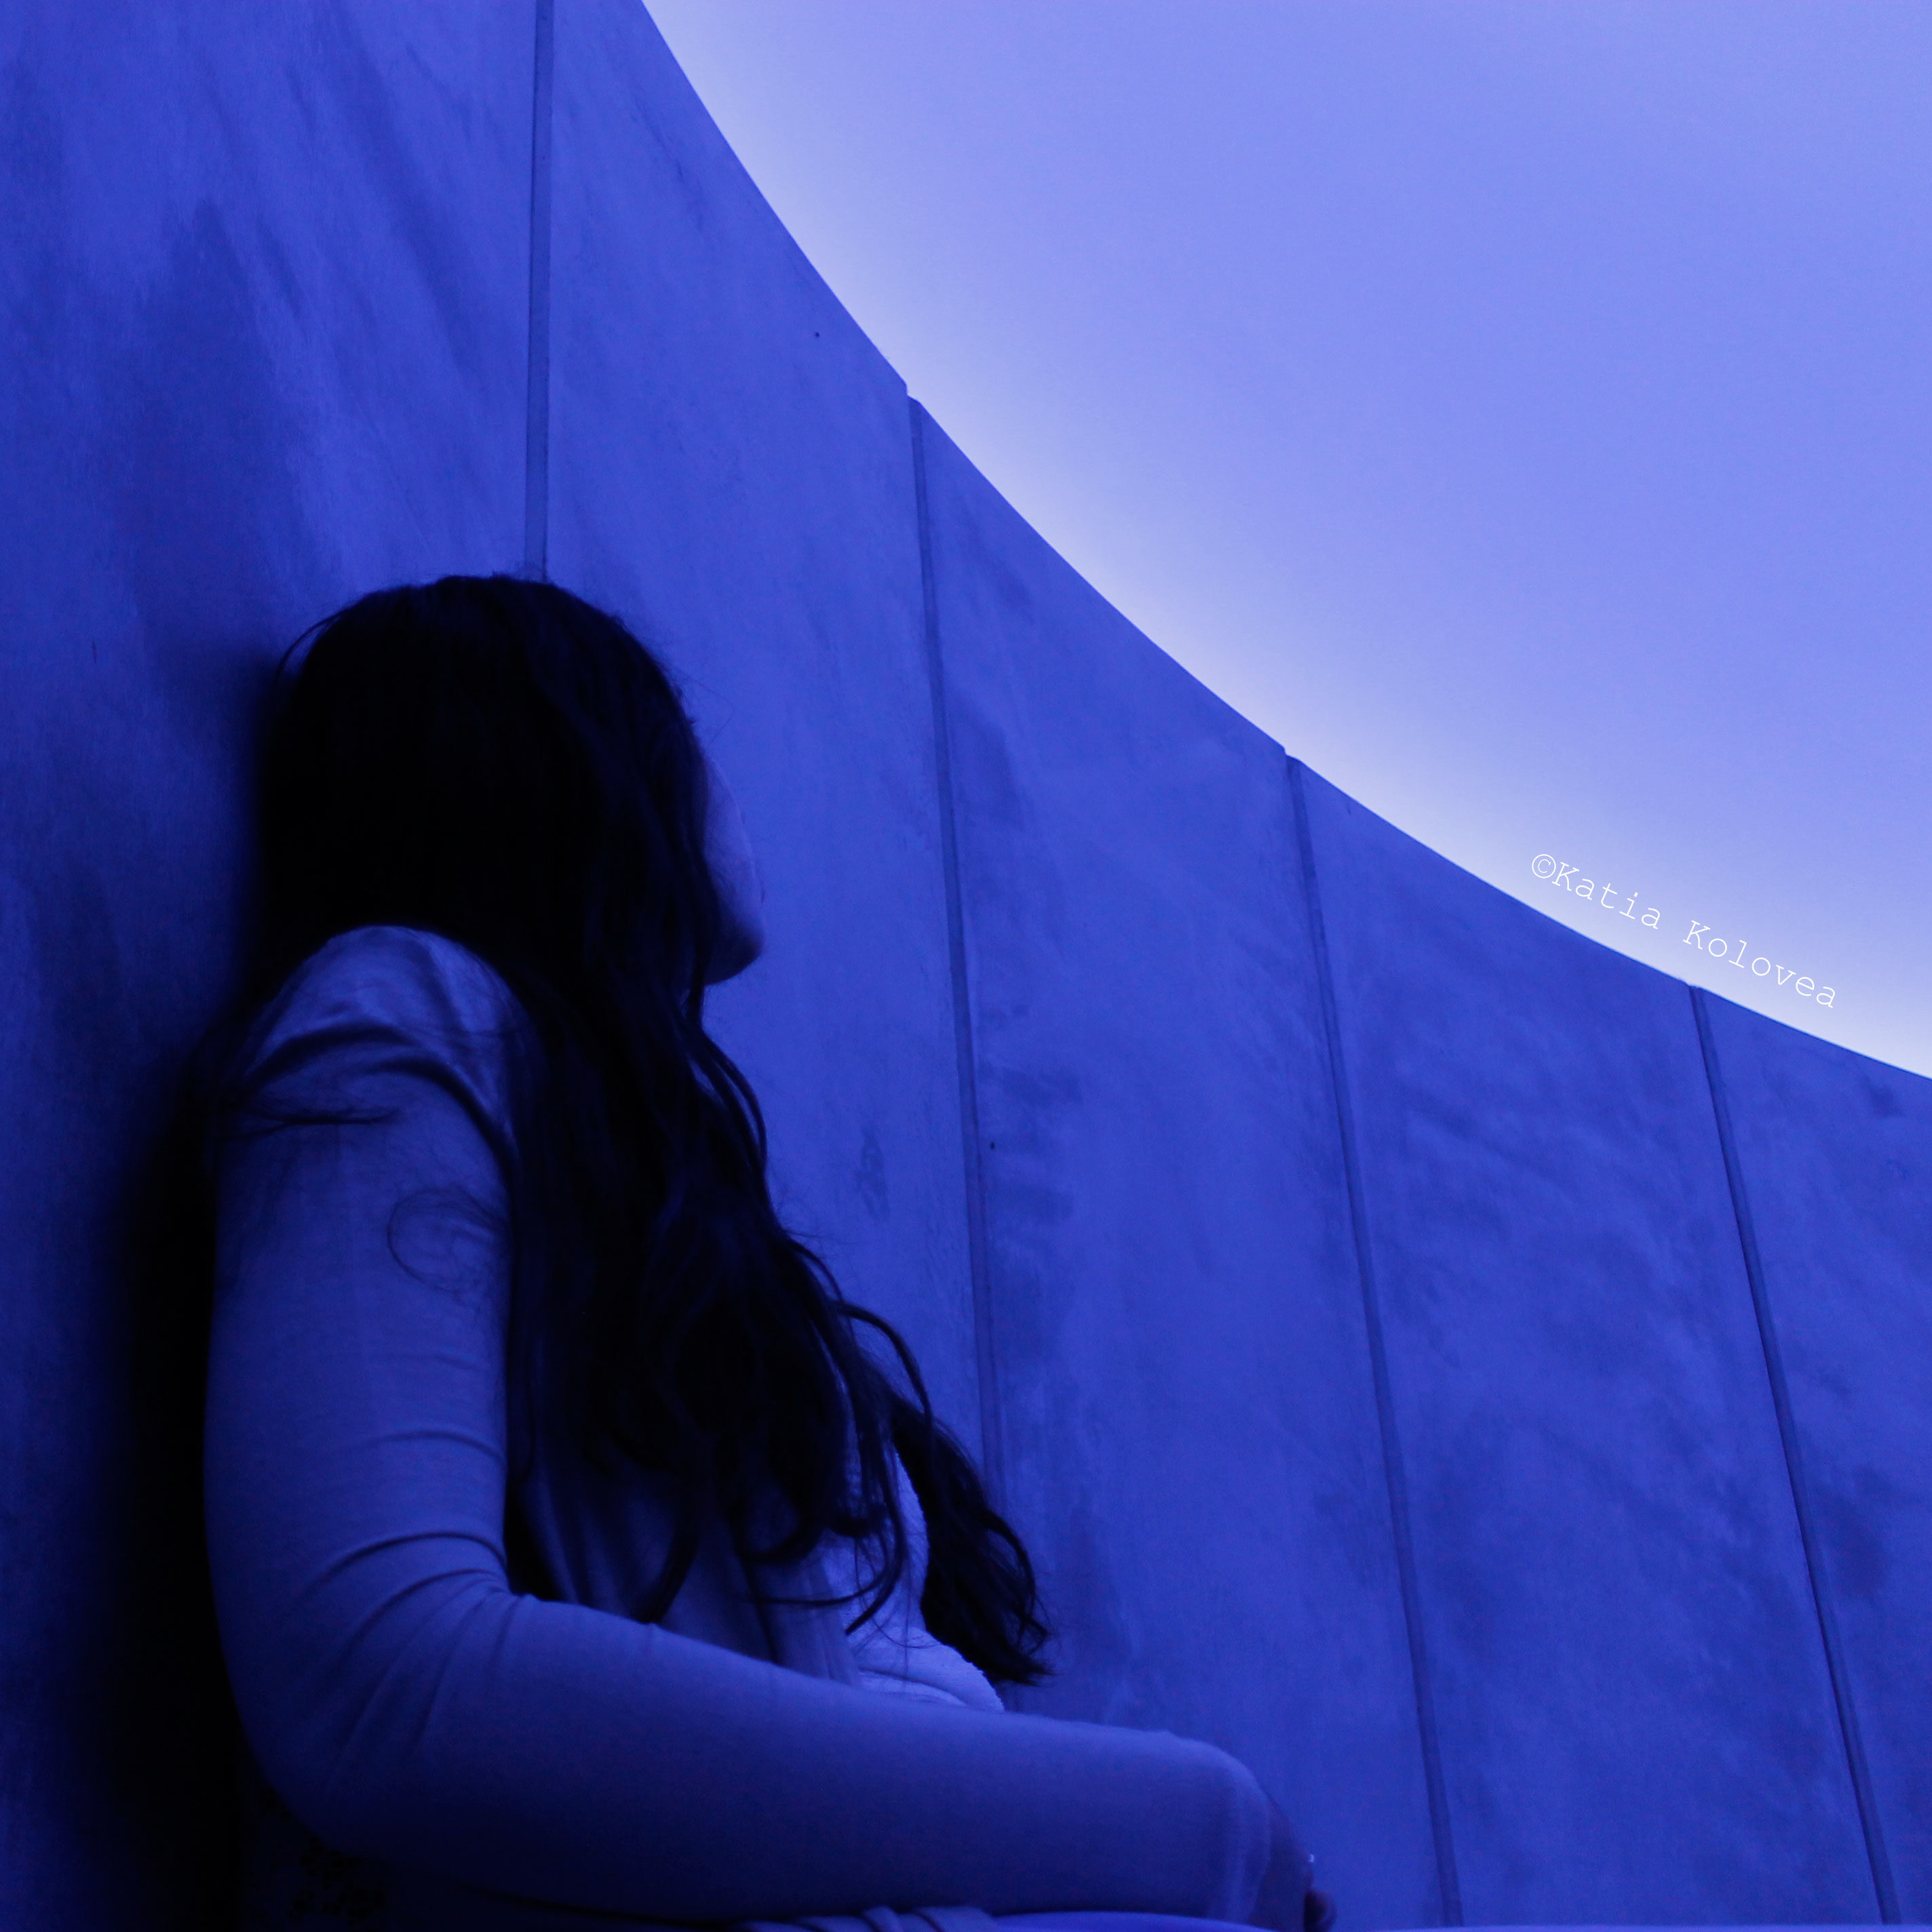 James Turrell experience